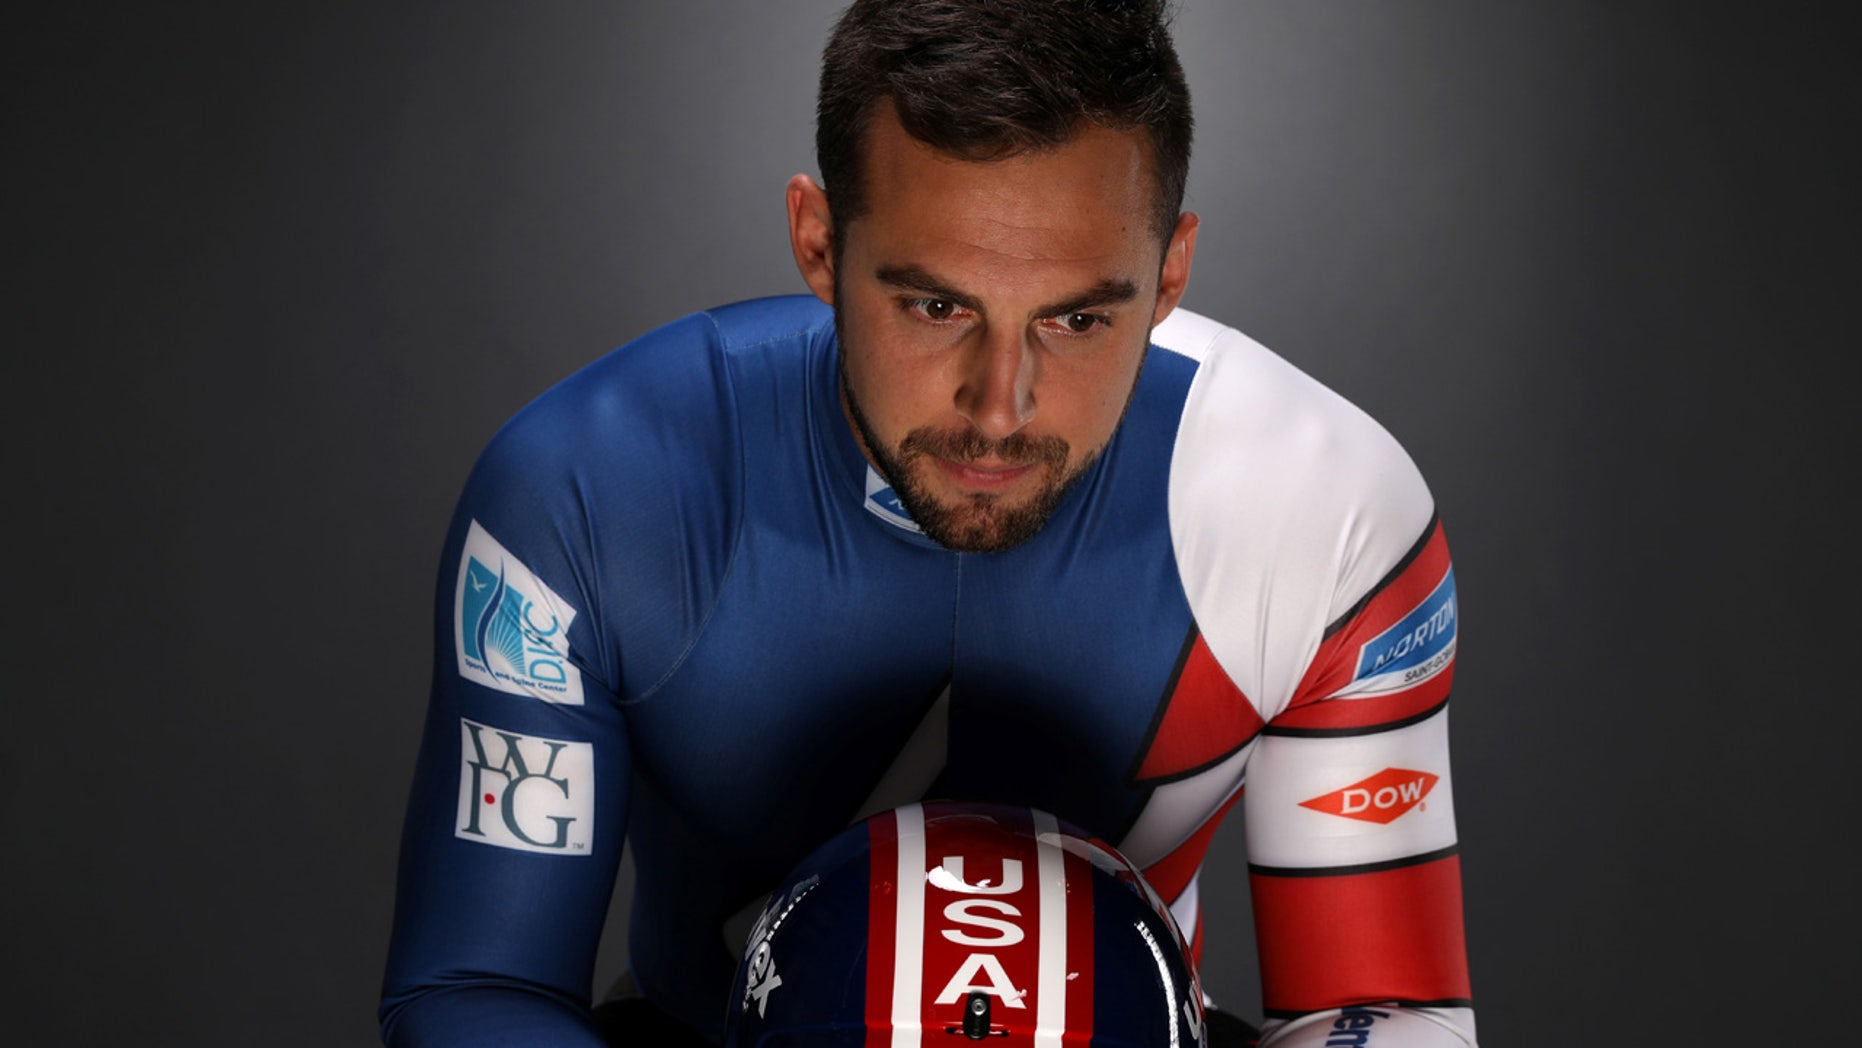 FILE 2017: Luge racer Chris Mazdzer poses for a portrait at the U.S. Olympic Committee Media Summit in Park City